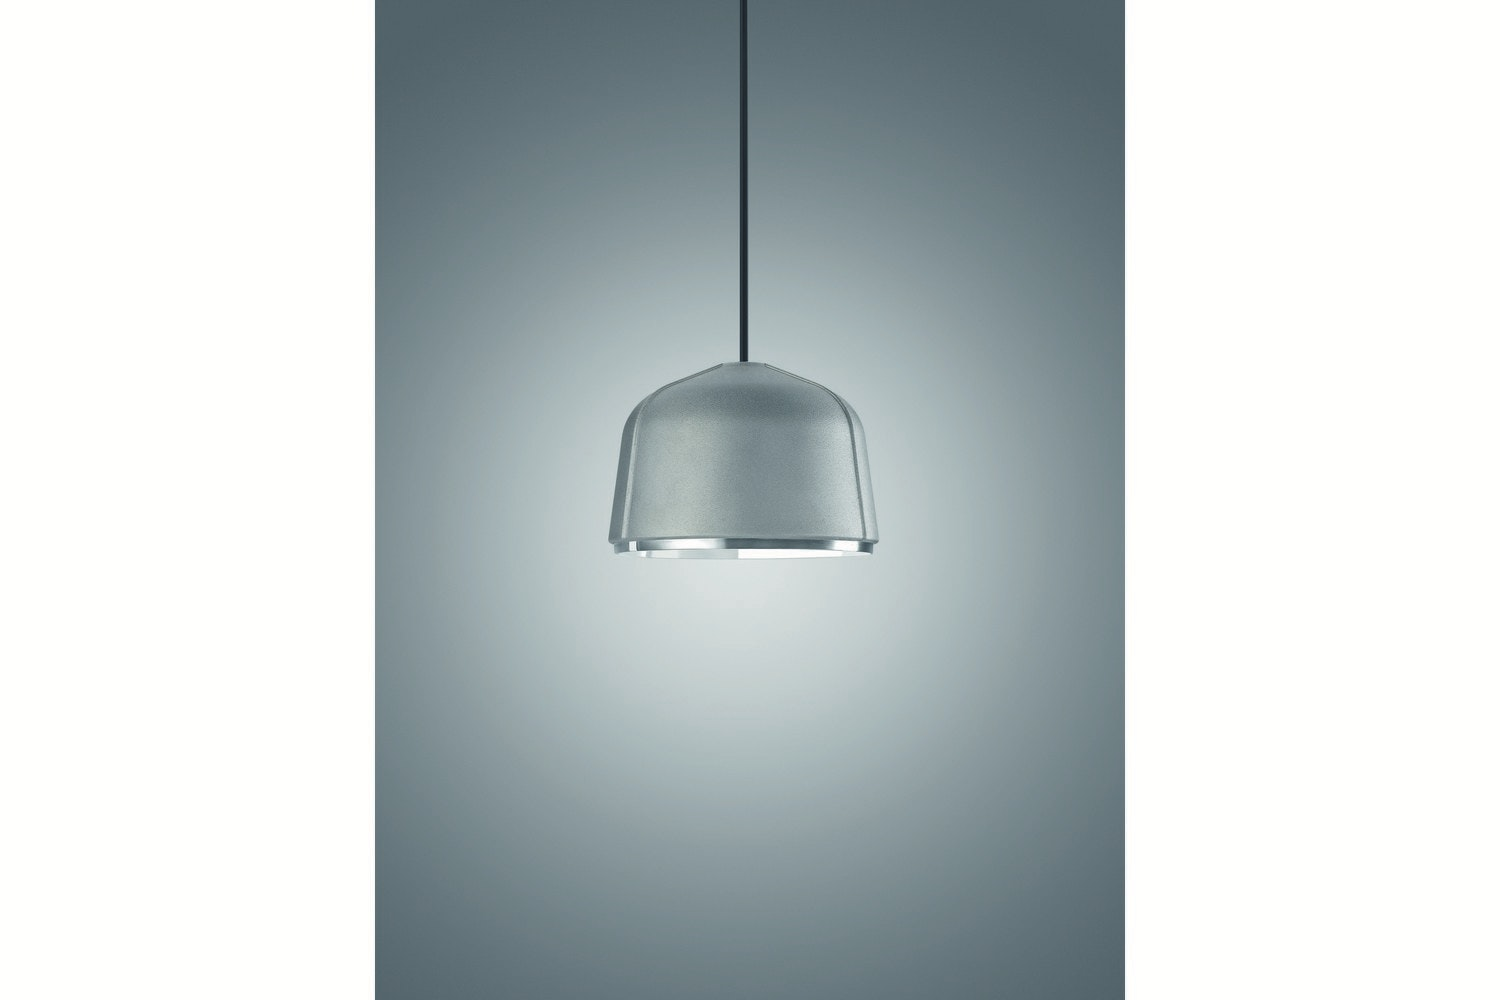 Arumi LED Dimmable Suspension Lamp by Lucidi & Pevere for Foscarini